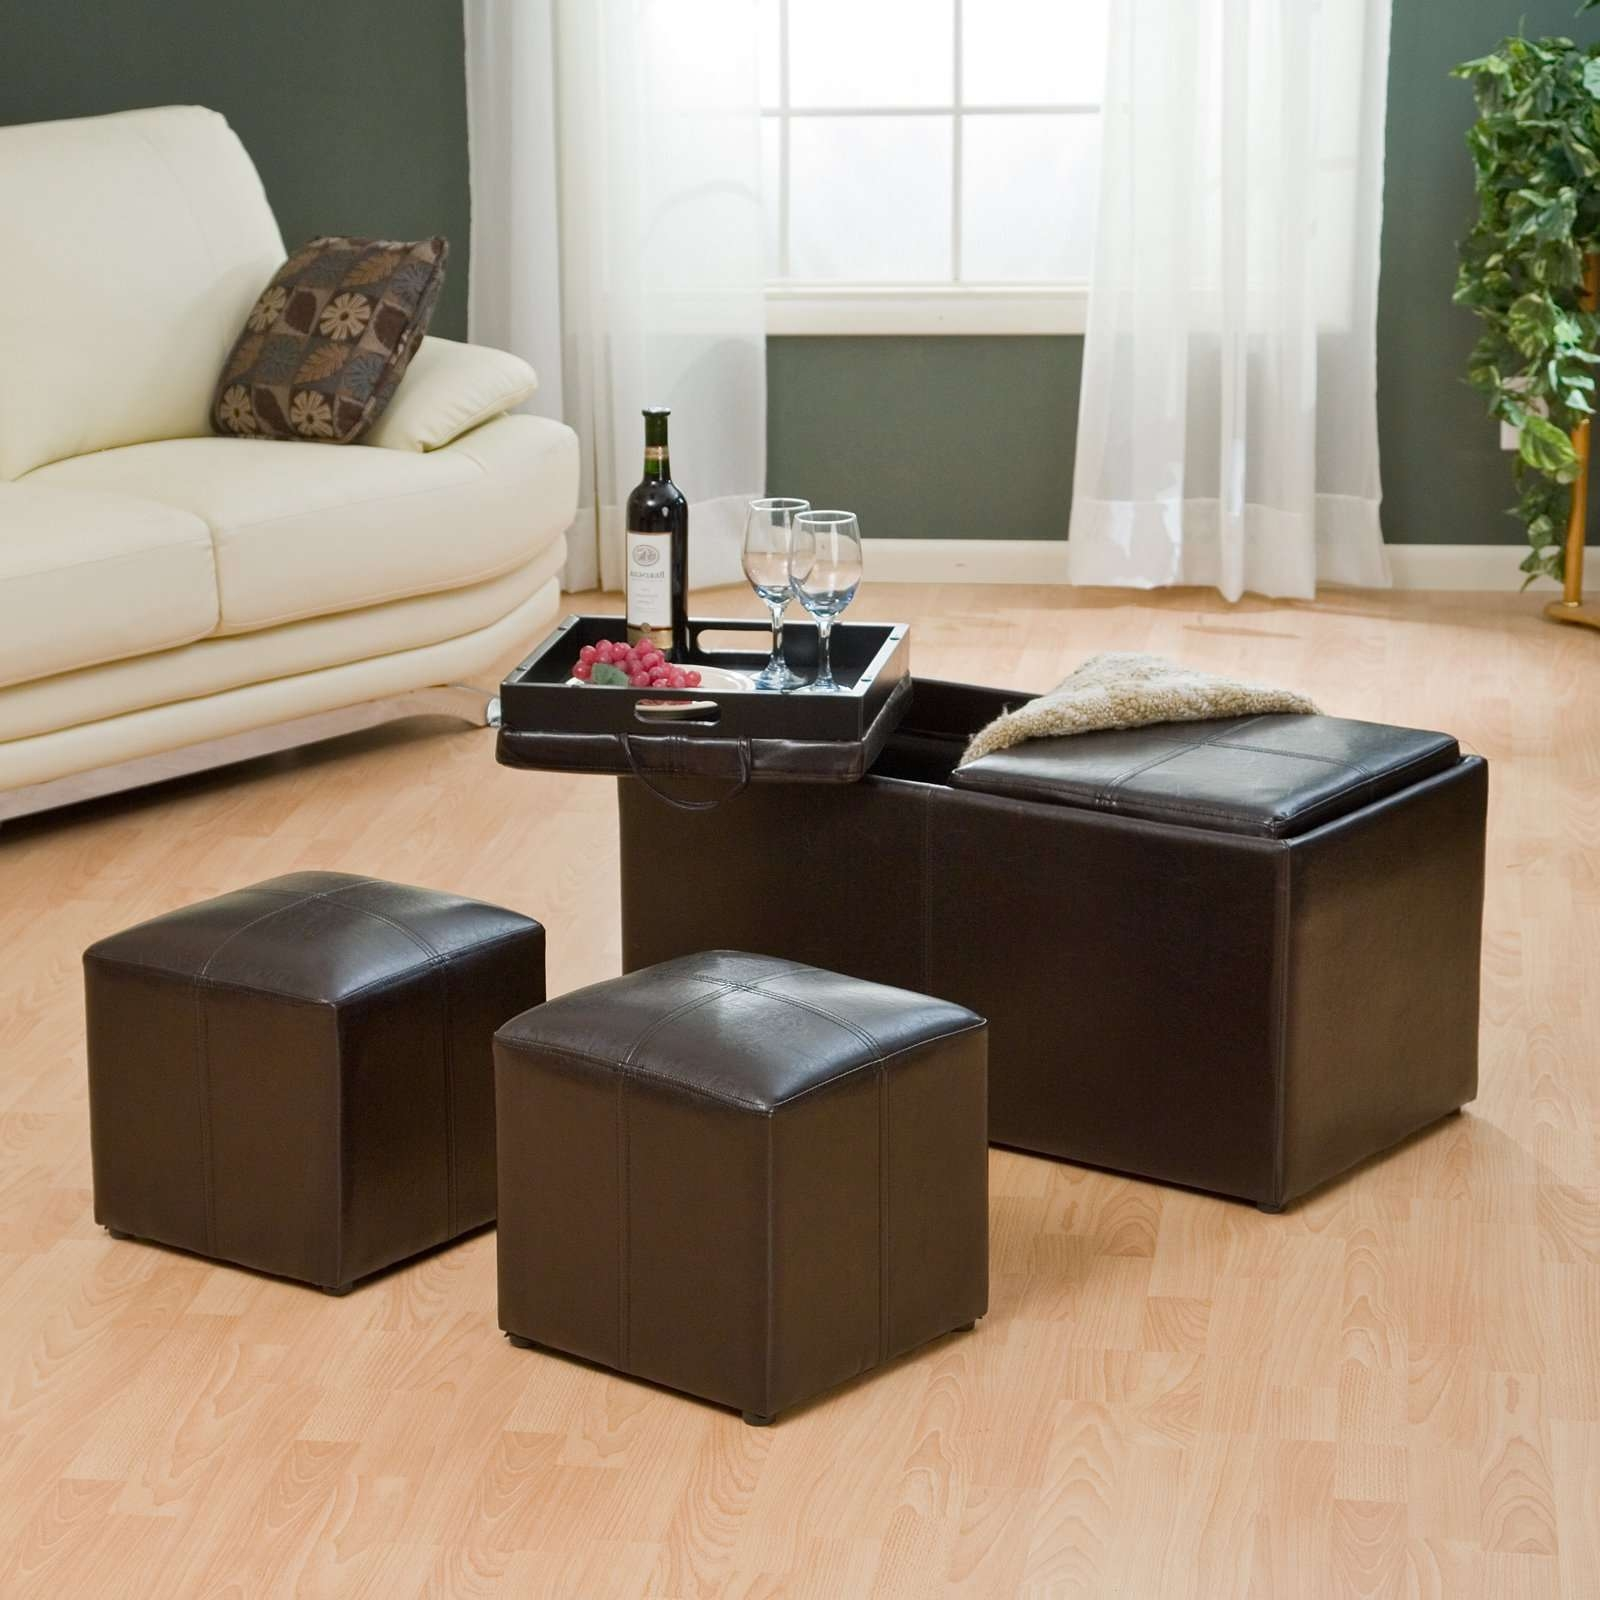 Favorite Green Ottoman Coffee Tables Throughout Green Leather Ottoman Coffee Table Tags : Mesmerizing Coffee (View 9 of 20)